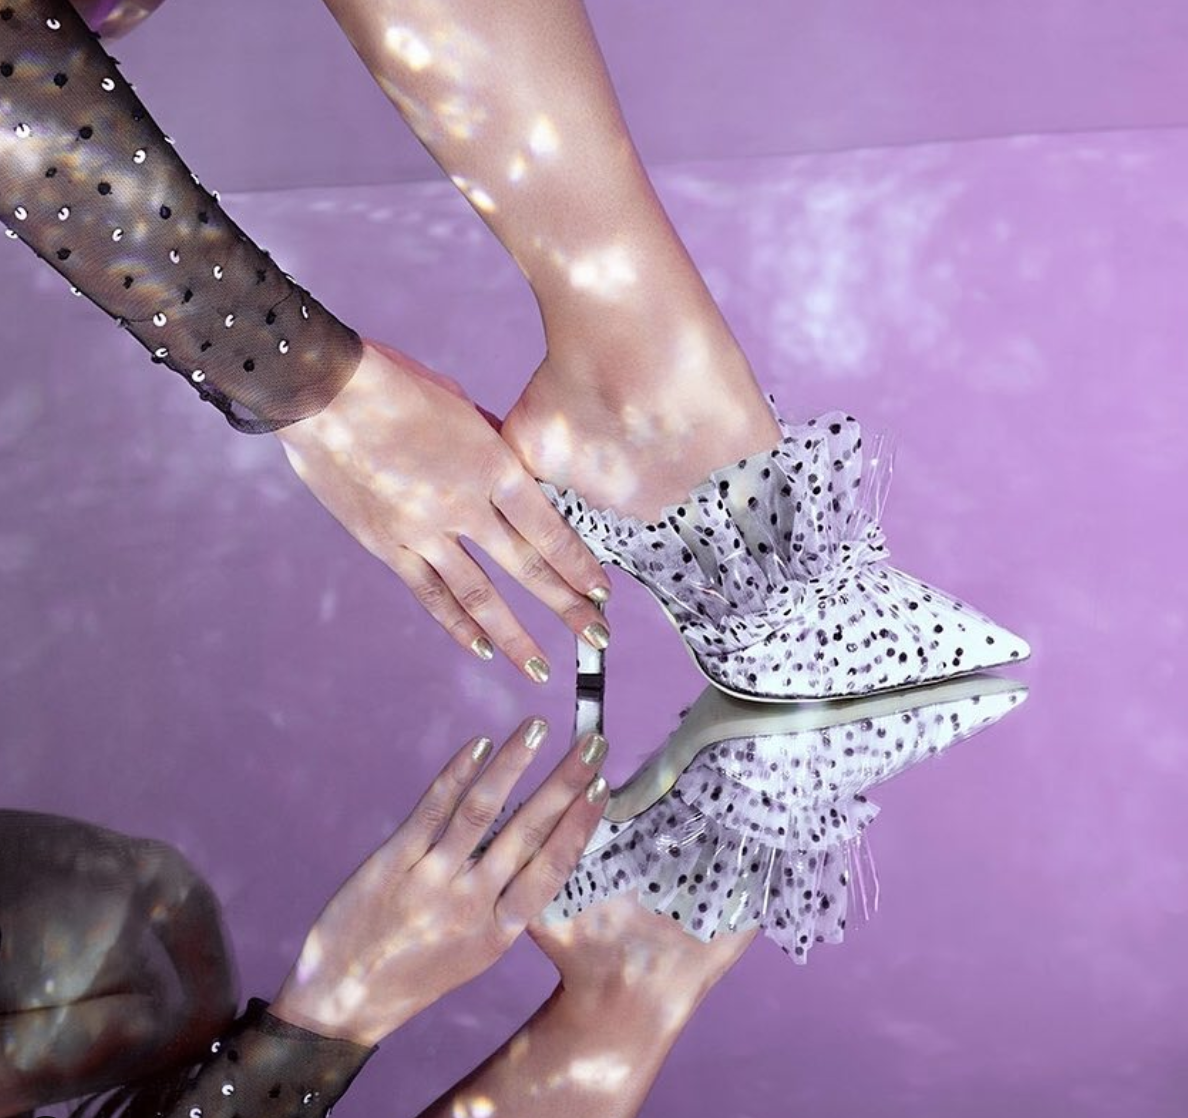 10 Emerging Shoe Brands You Should Know About